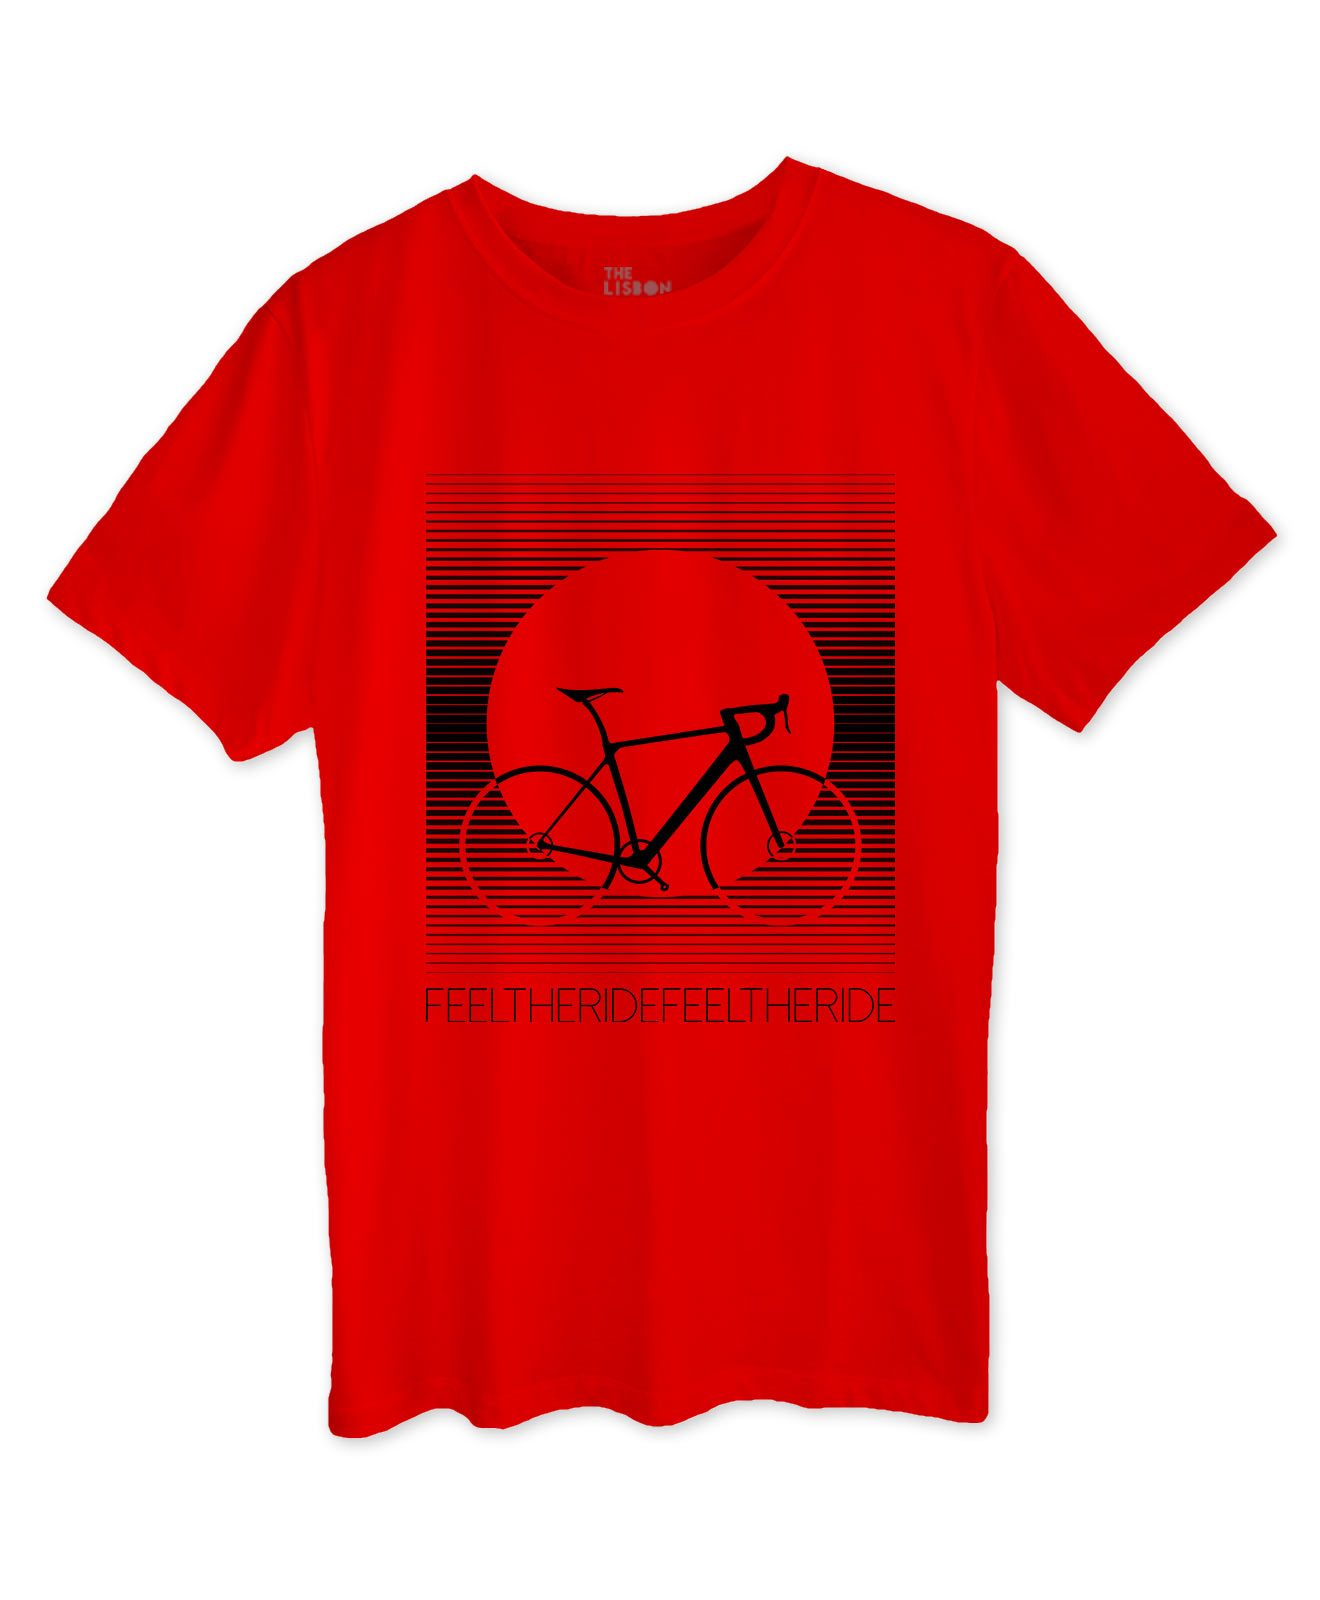 Bike Stripes Road T-shirt red bikes collection